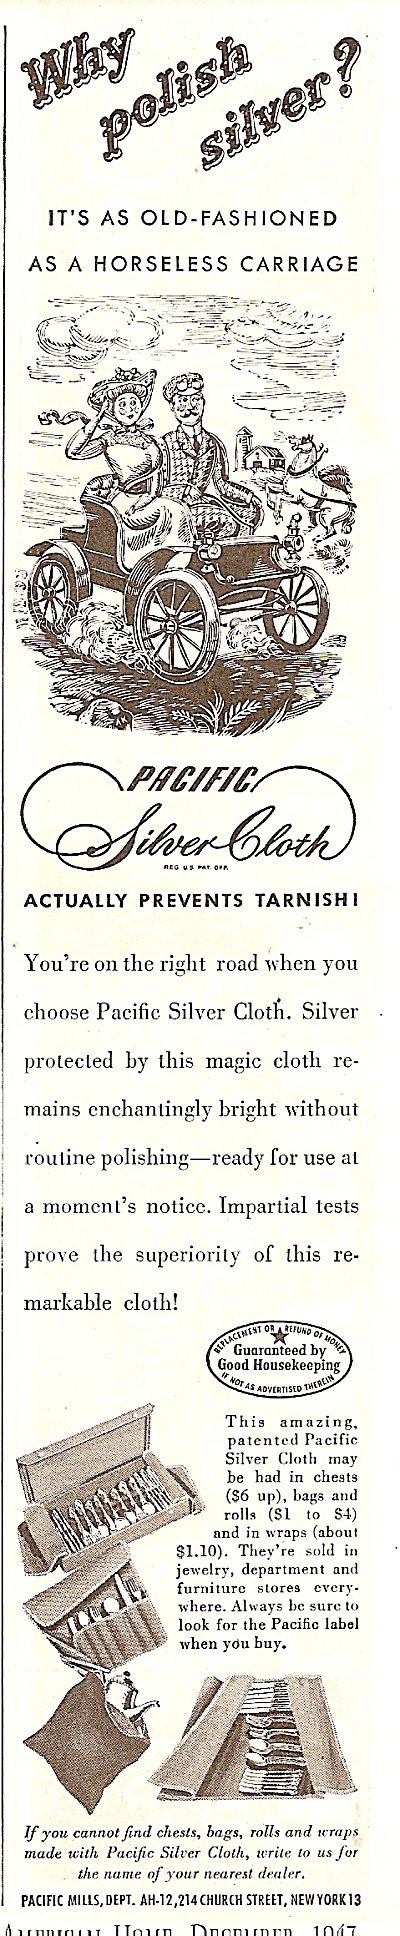 Pacific Silver cloth ad 1947 (Image1)